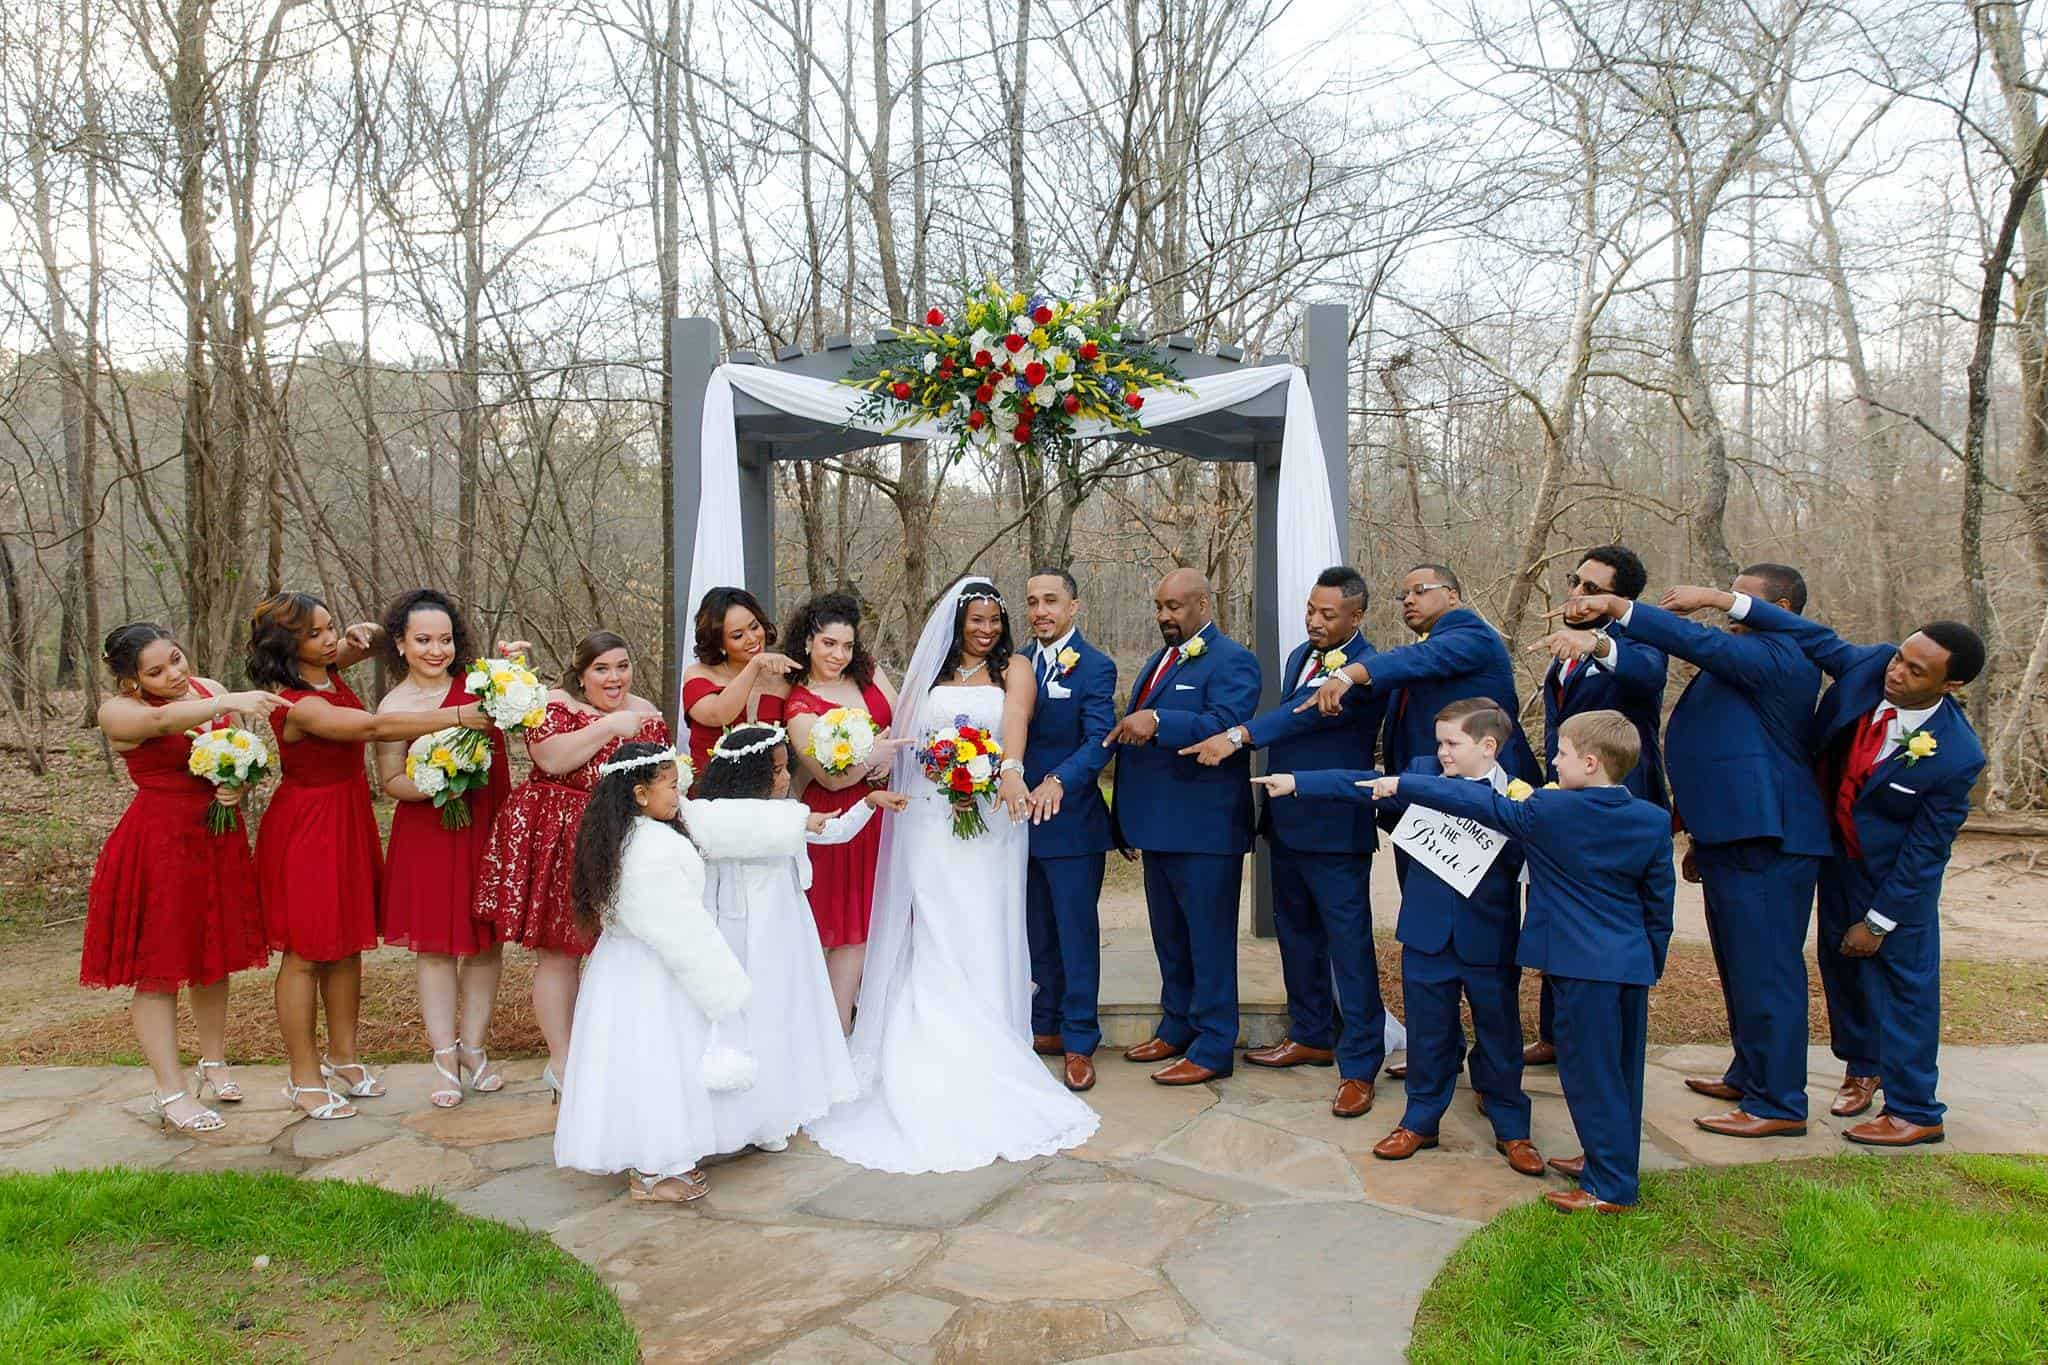 Bride and Groom with Bridesmaids, Groomsmen, ring bearers and flowergirls in wedding ceremony photo at the altar with river in the background